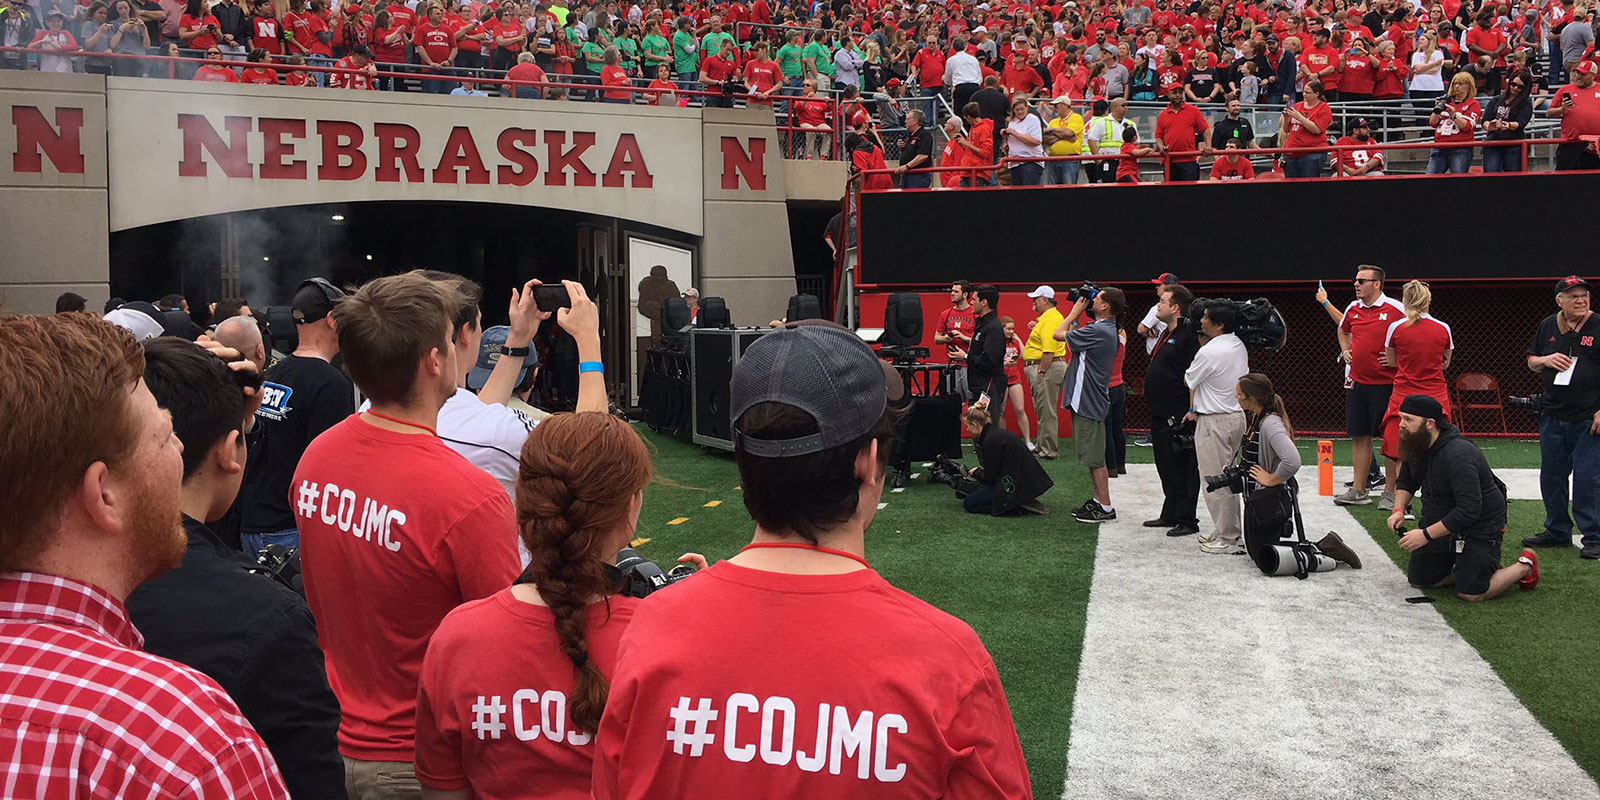 The spring game gets underway with plenty of CoJMC presence